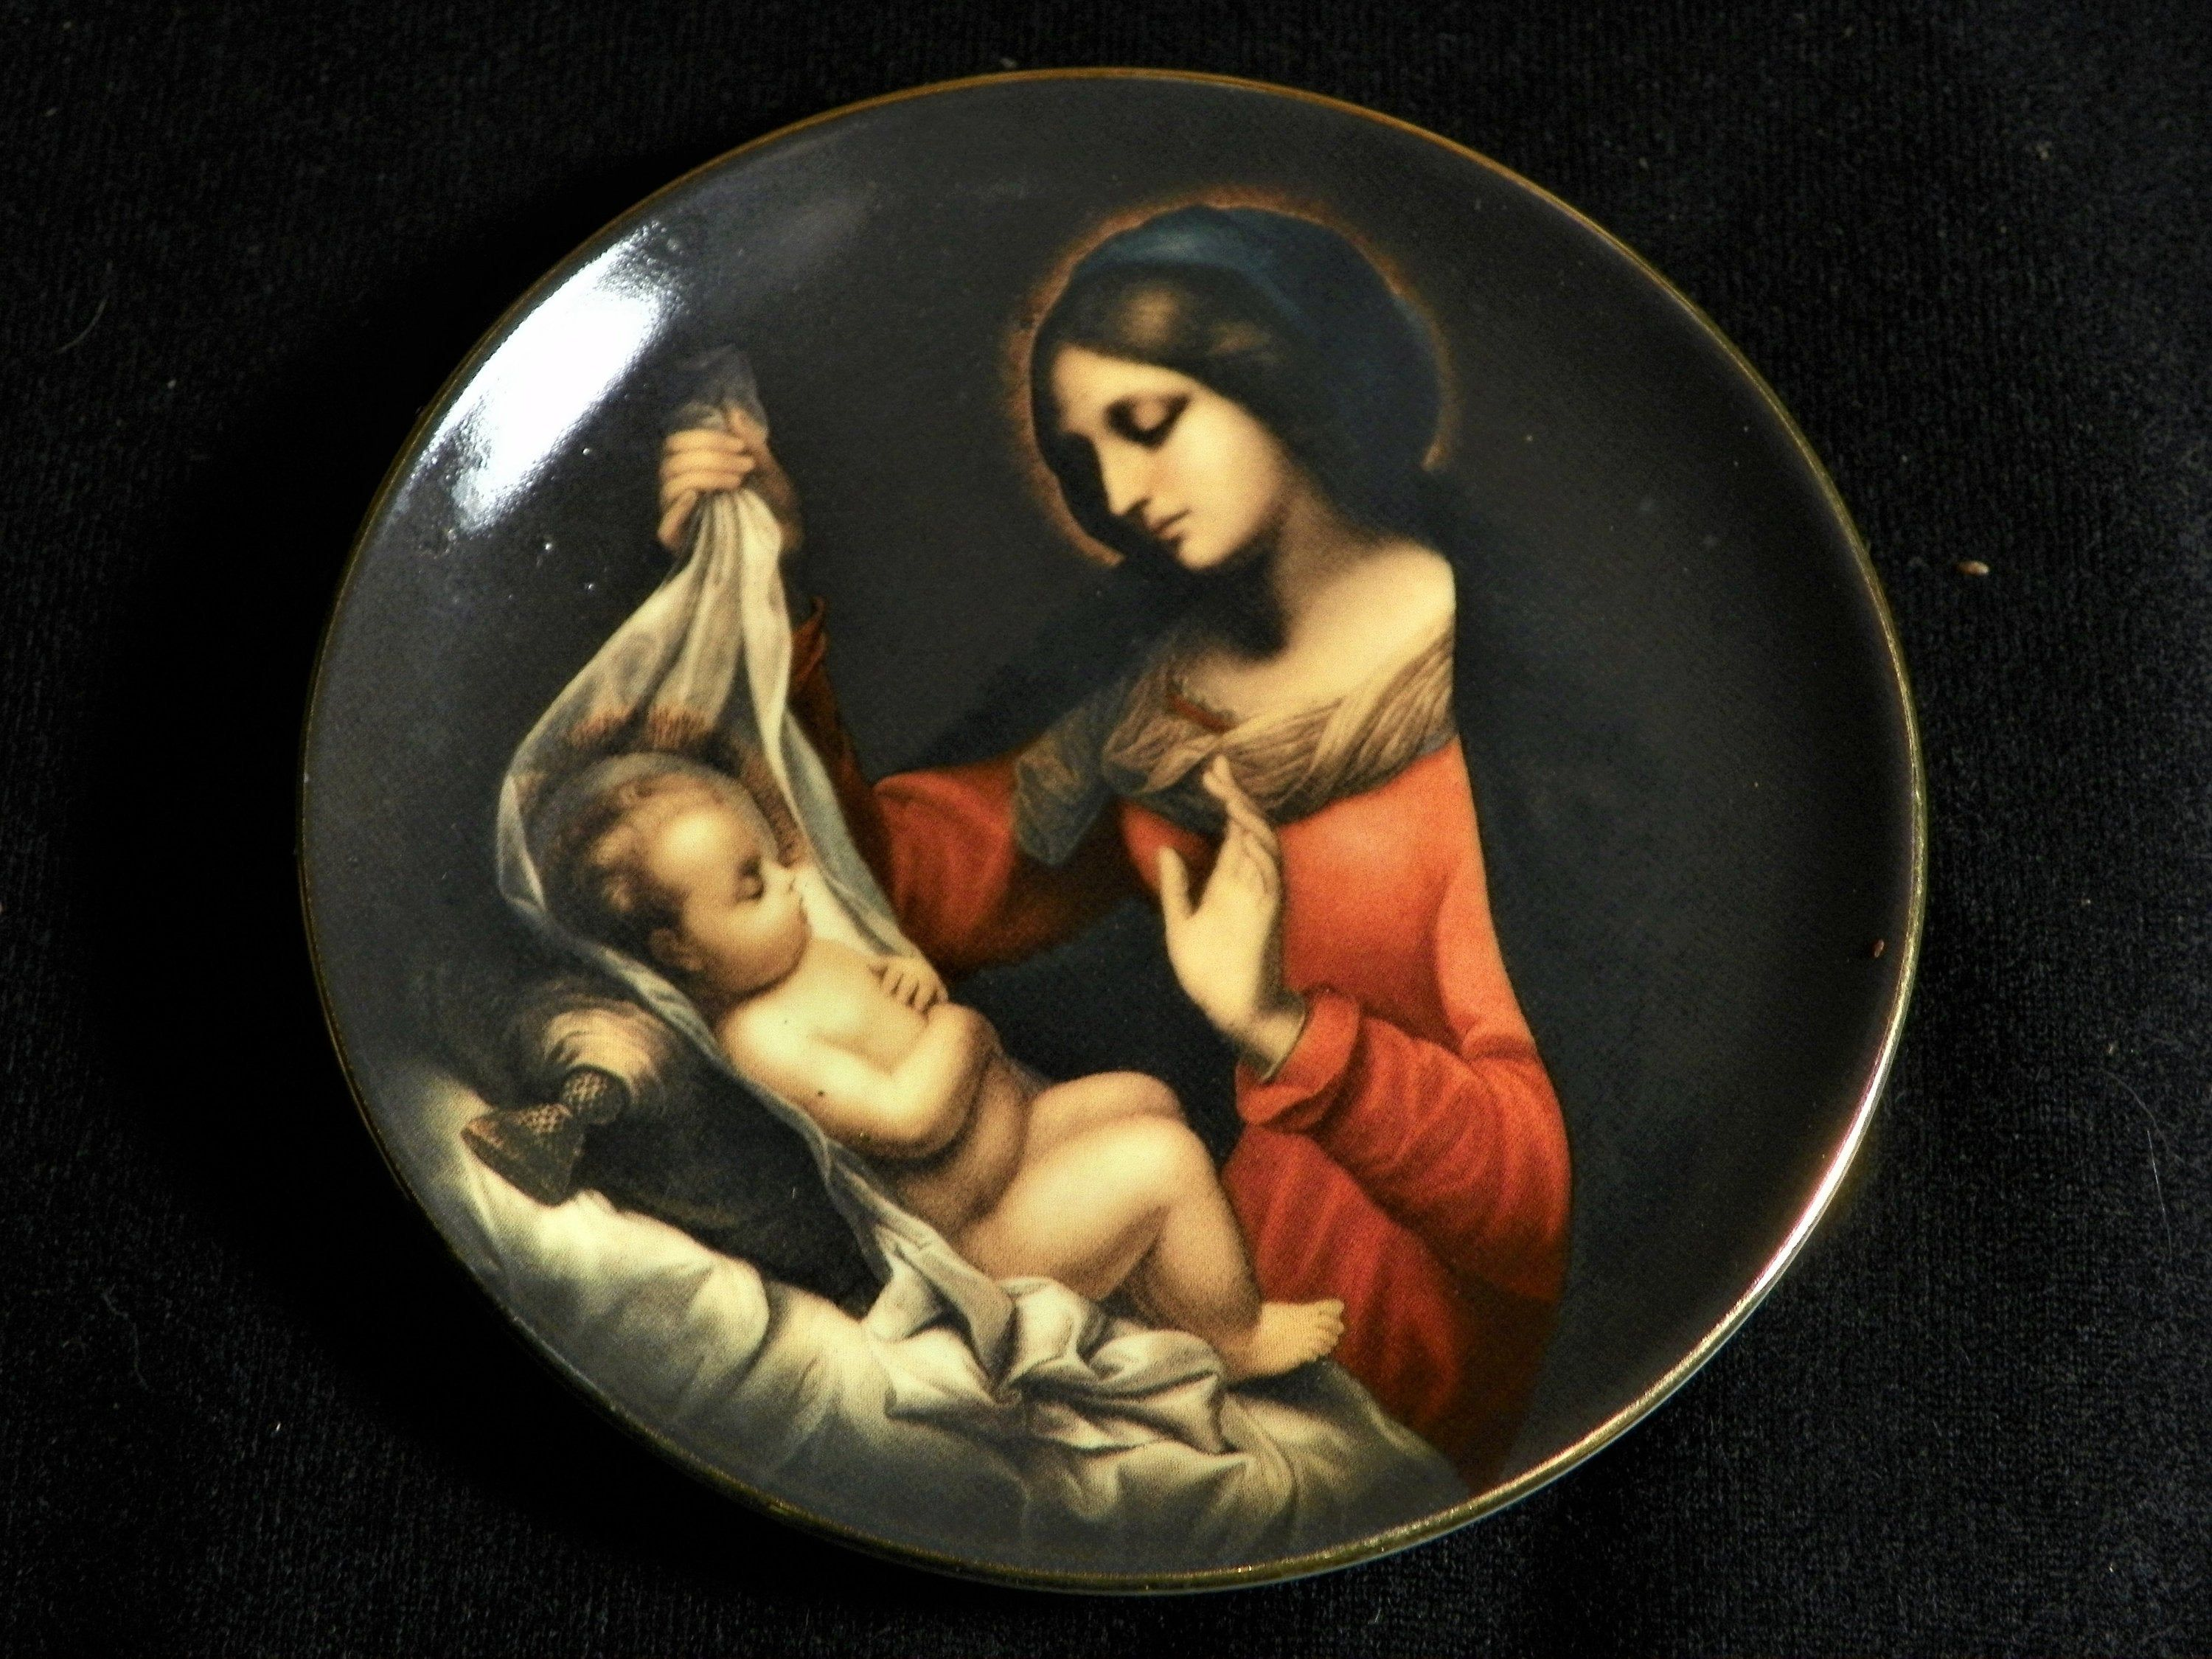 Tbn Christmas 2020 TBN Limited Edition Miniature Plate Mary and Baby Jesus Christmas